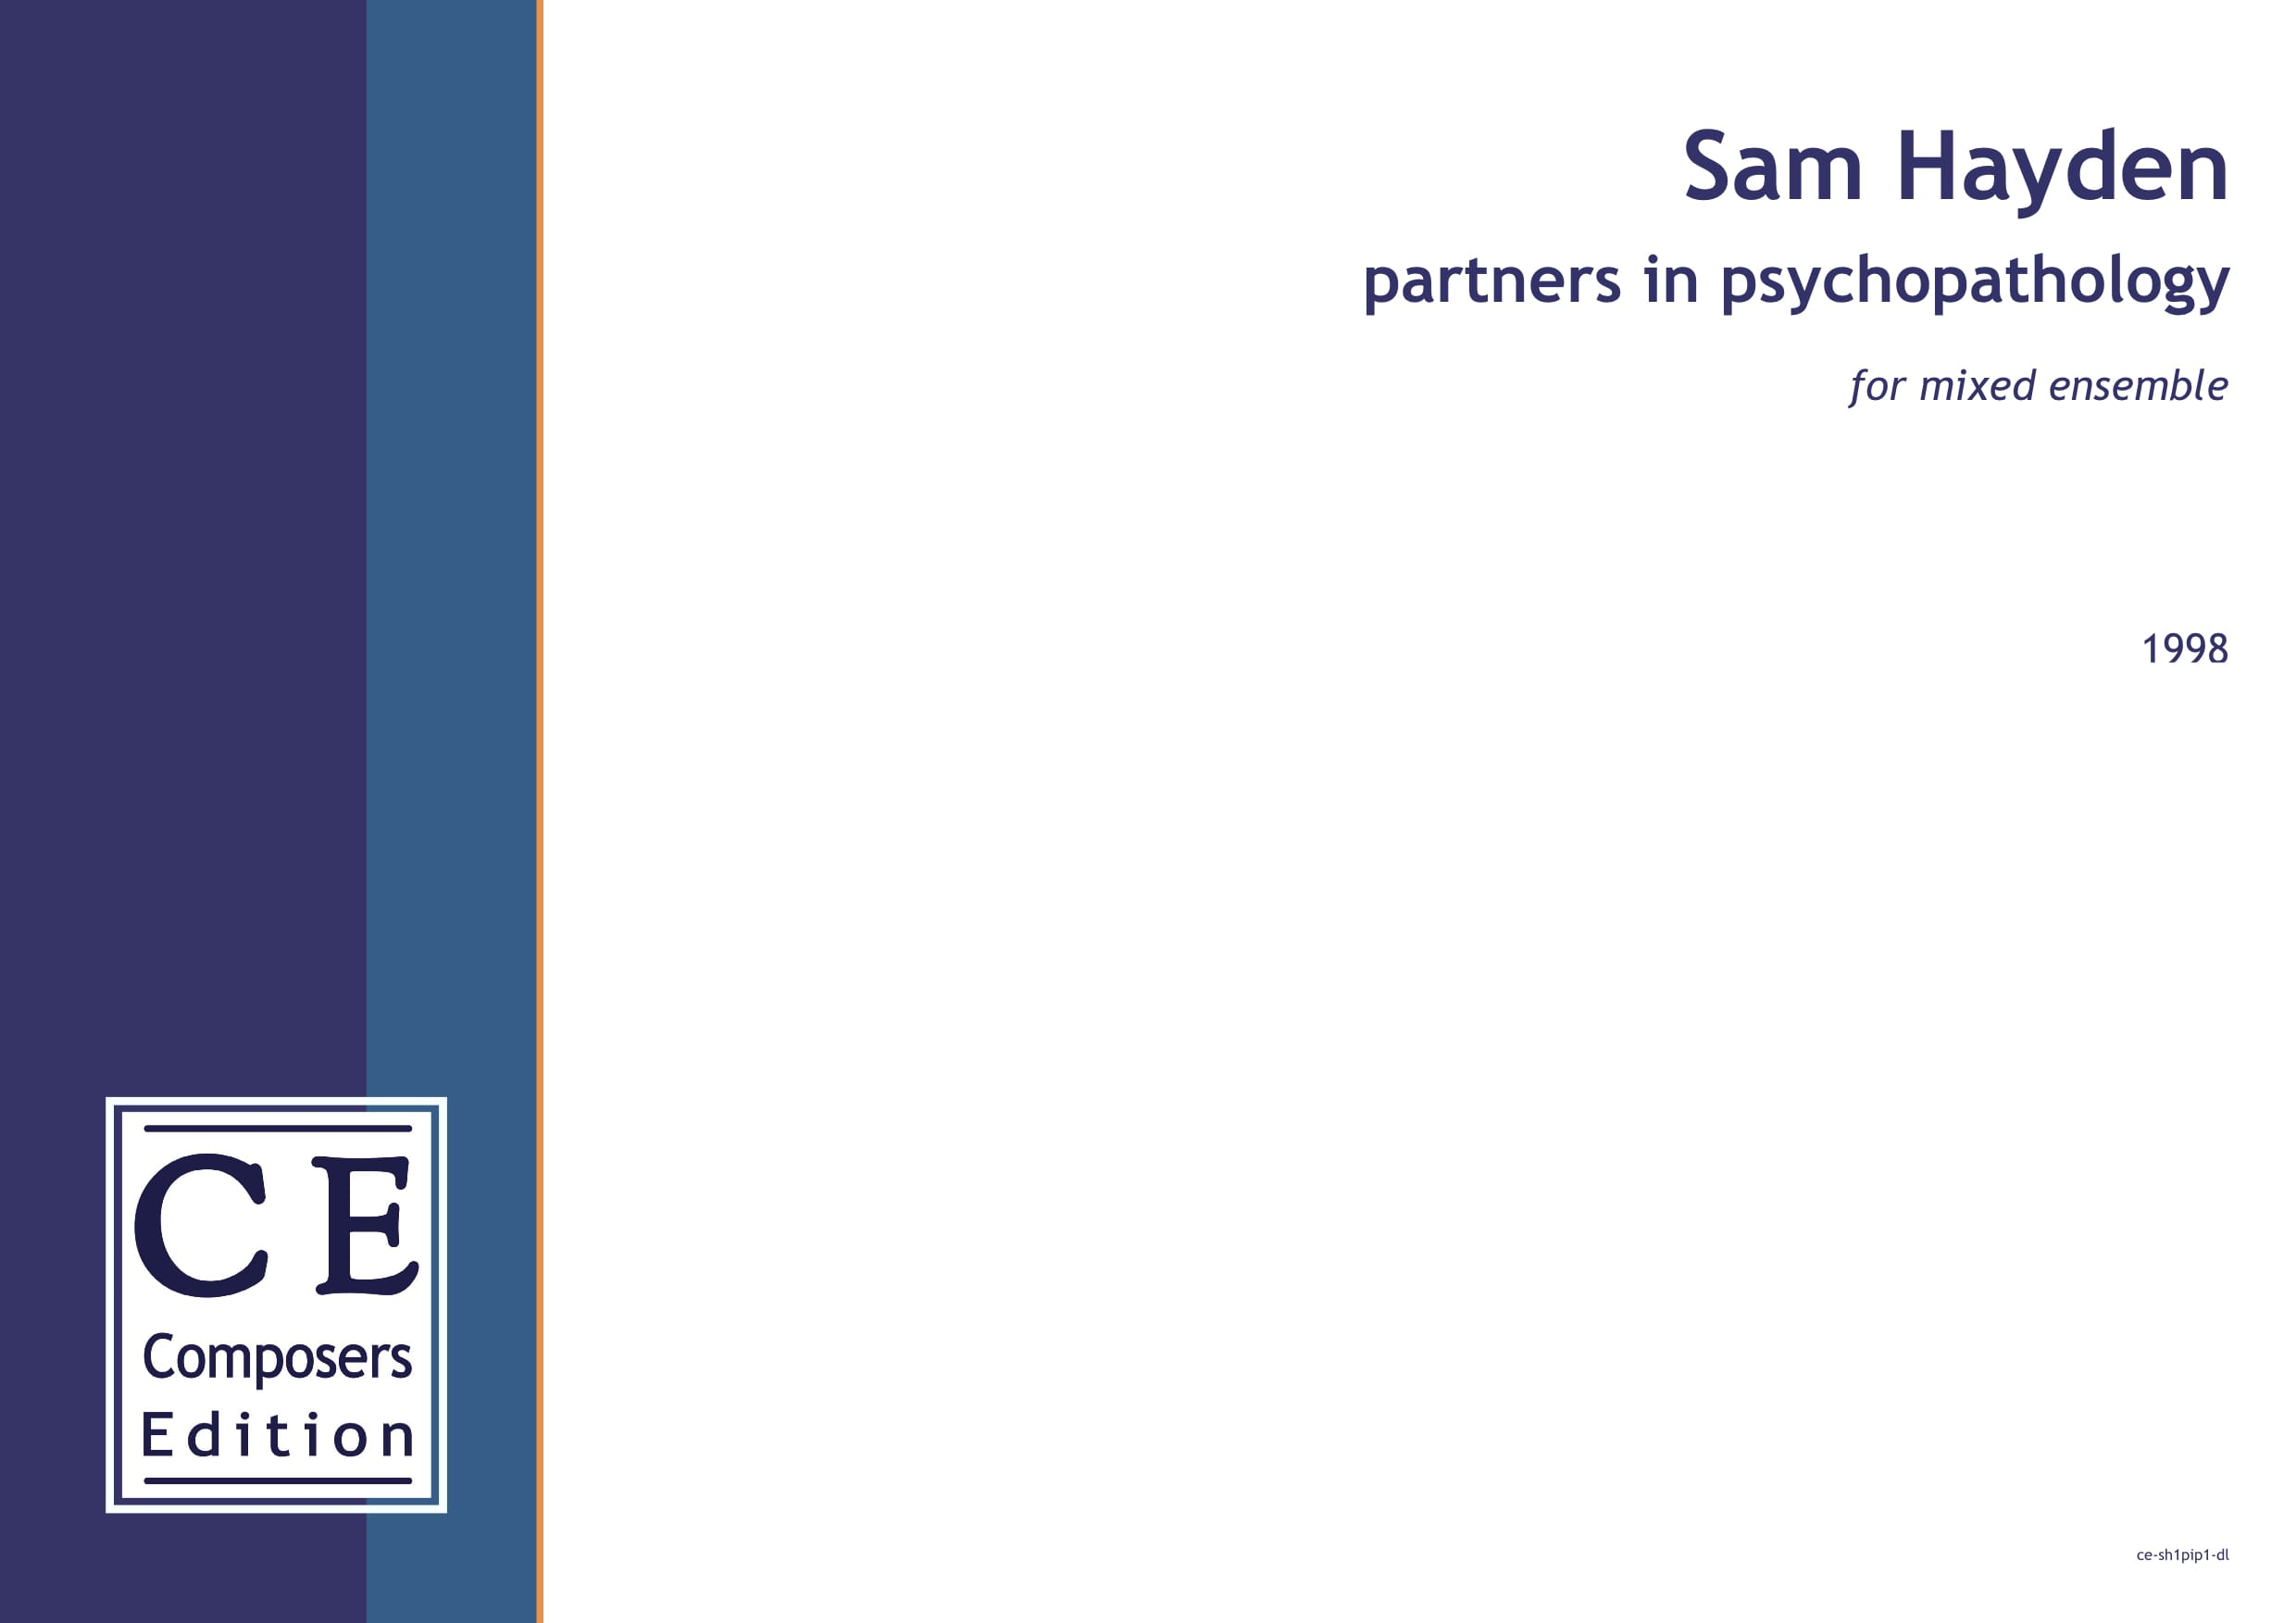 Sam Hayden: partners in psychopathology for mixed ensemble